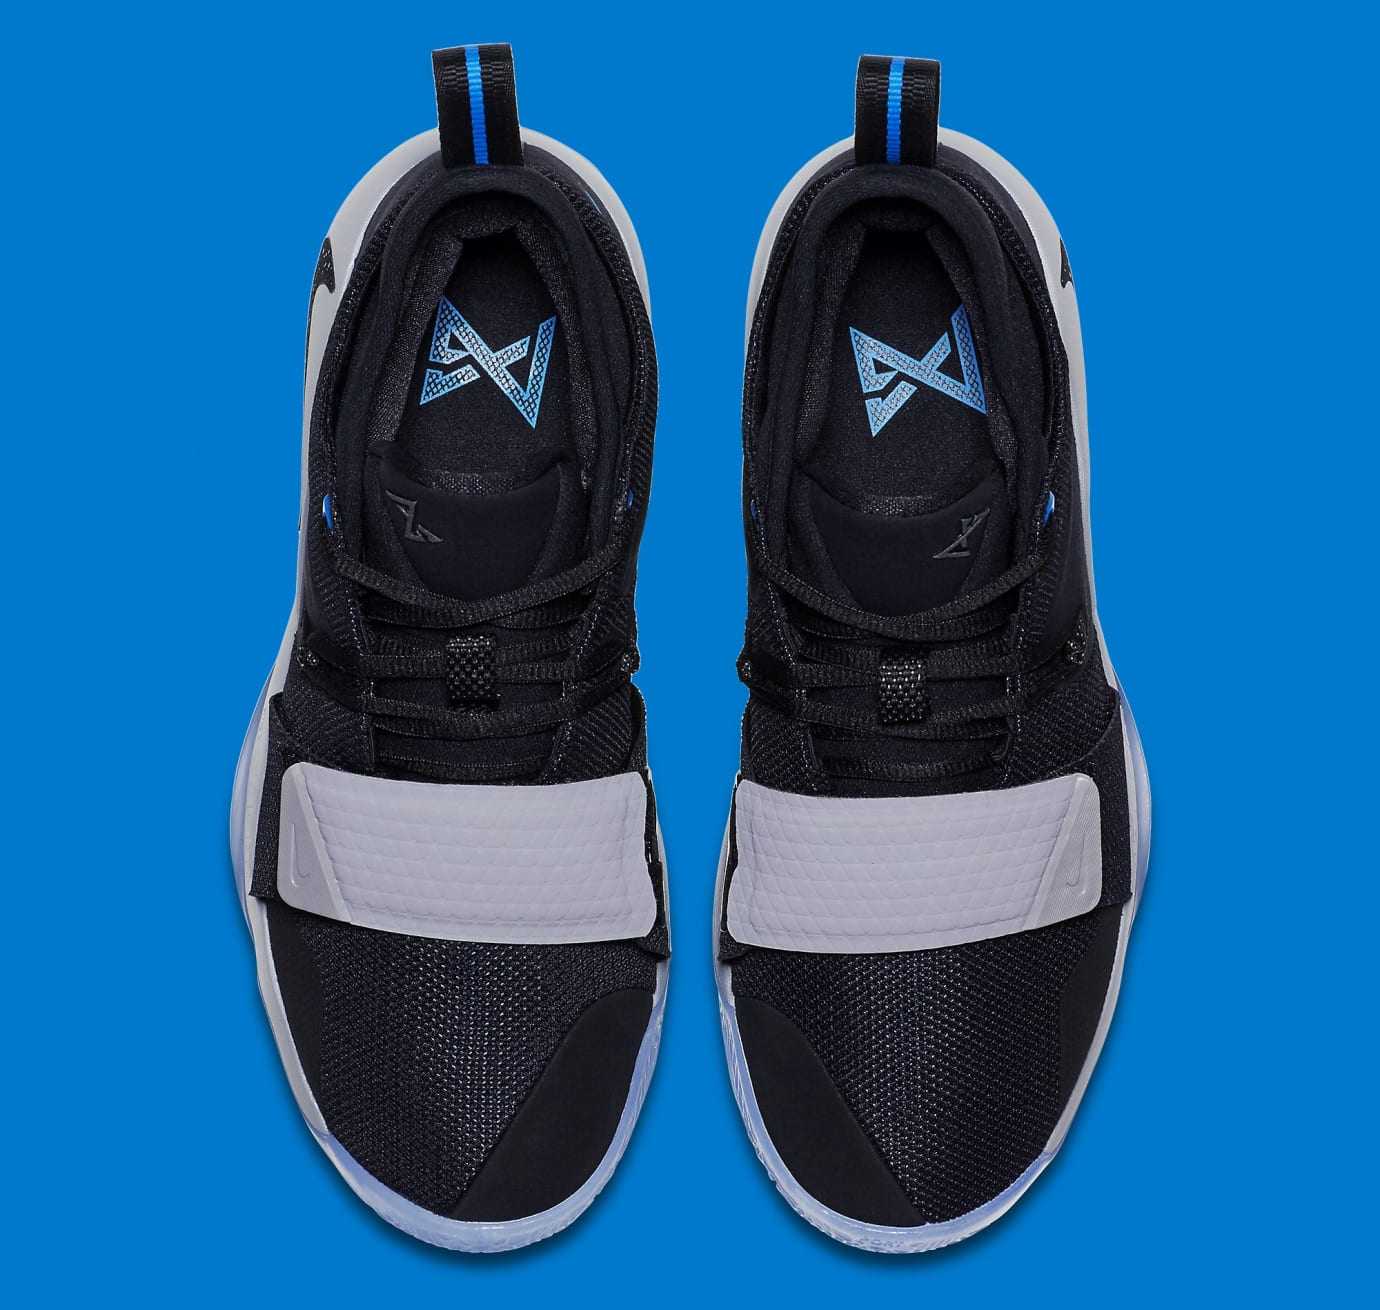 a17bf81d0a92 Image via Nike Nike PG 2.5 Black Photo Blue Release Date BQ8453-006 Top